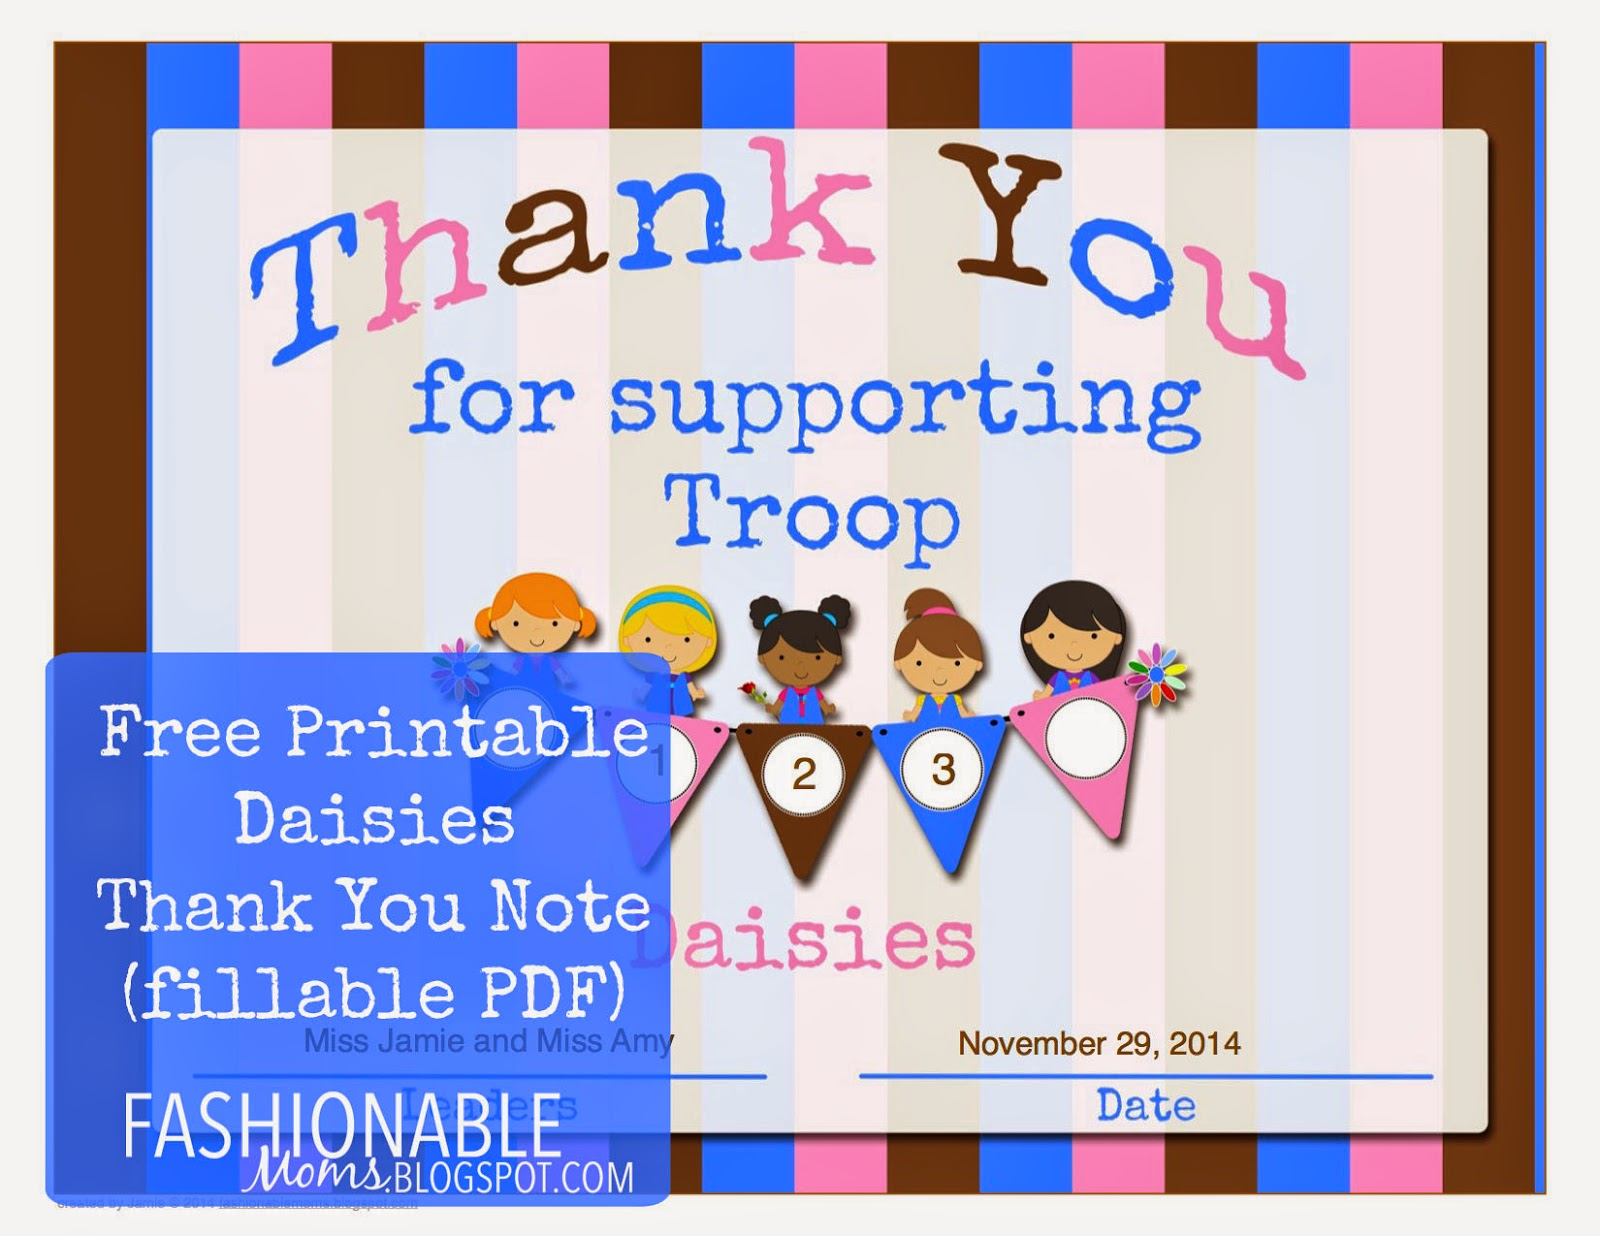 My Fashionable Designs Free Printable Daisy Thank You